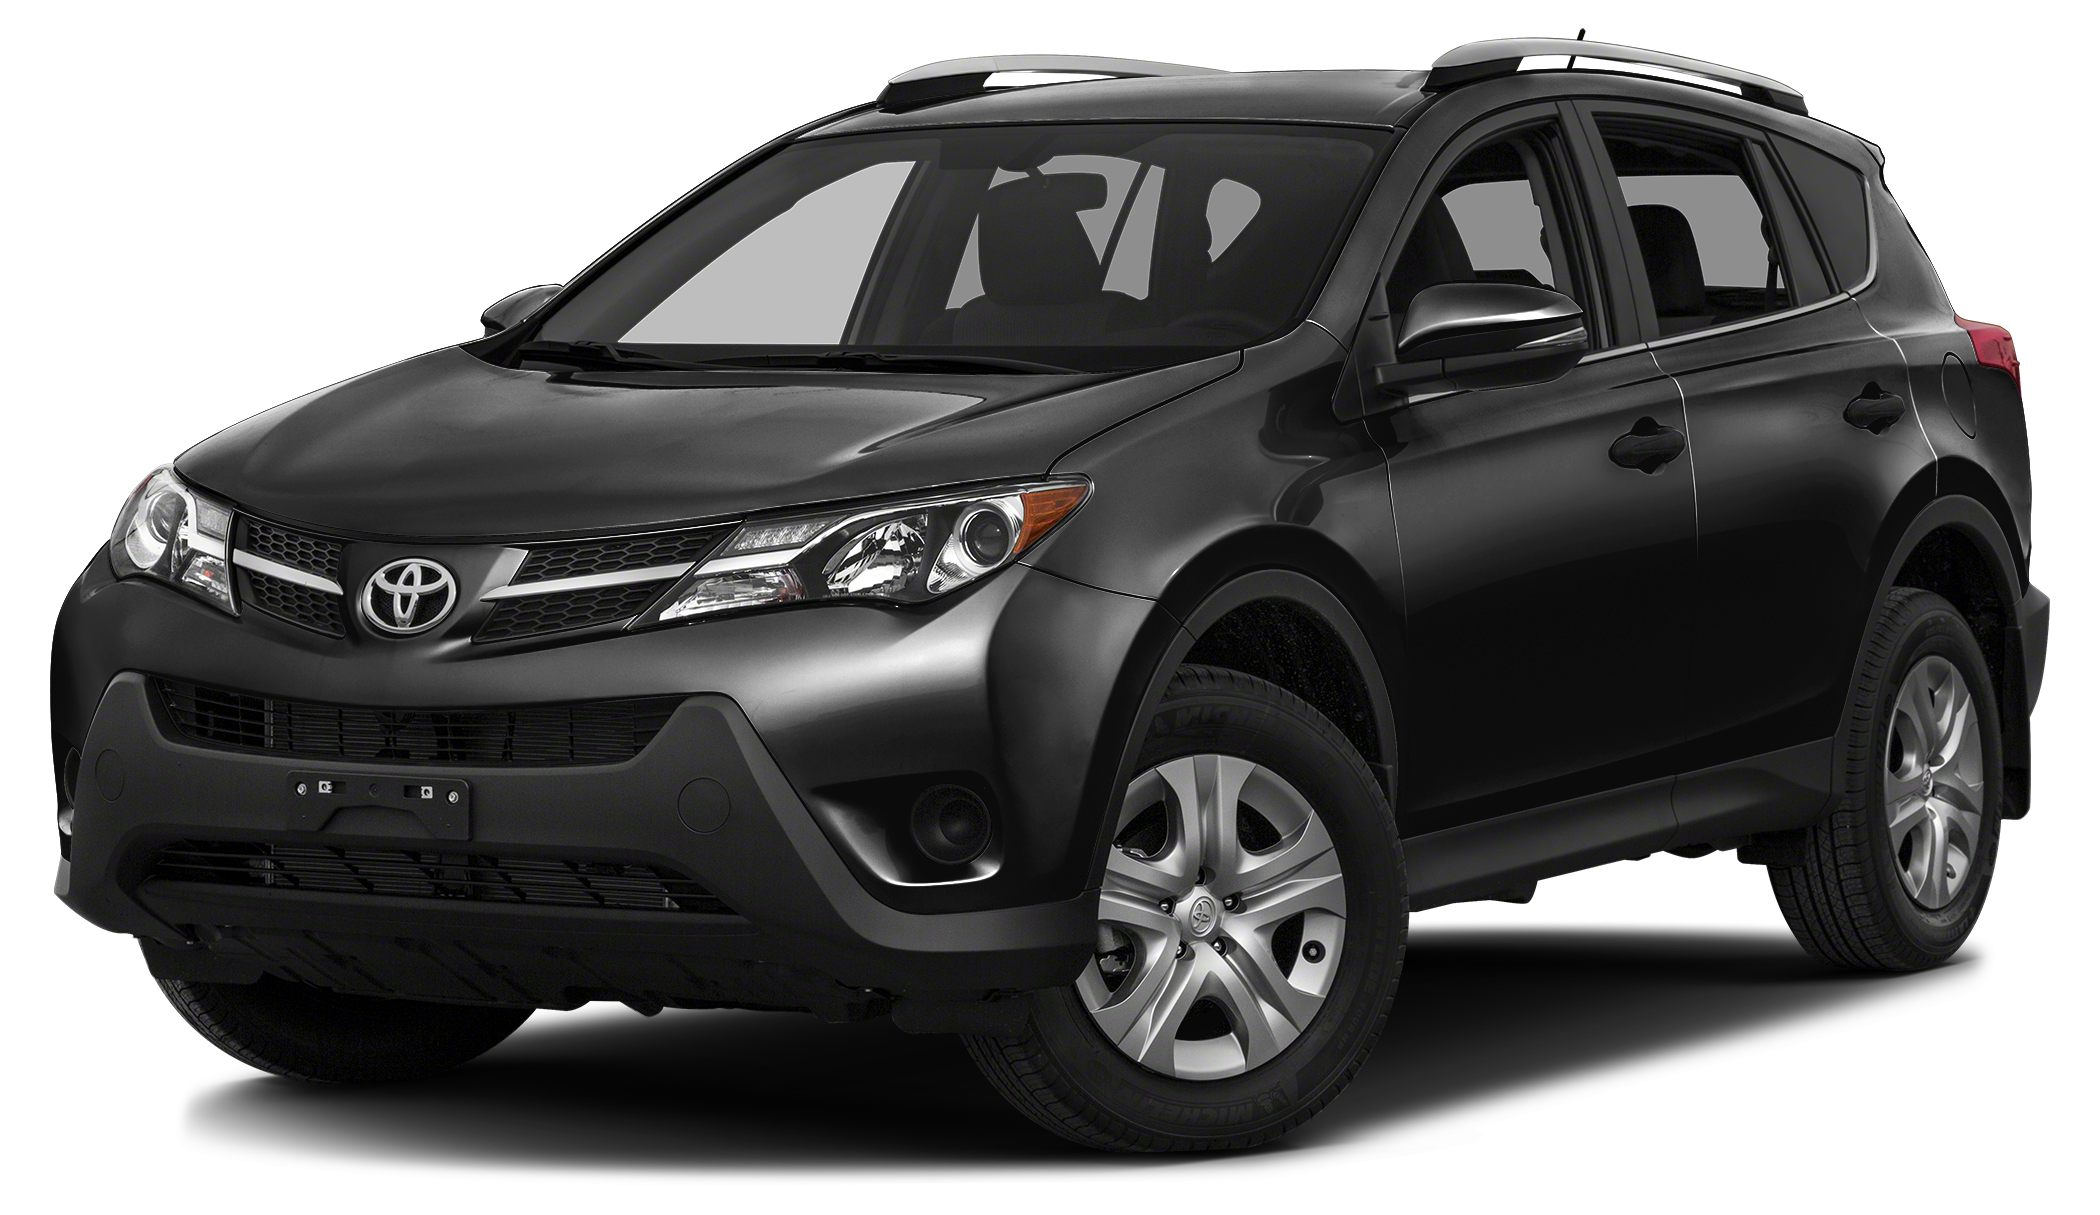 2015 Toyota RAV4 Limited 700 below Kelley Blue Book EPA 29 MPG Hwy22 MPG City CARFAX 1-Owner